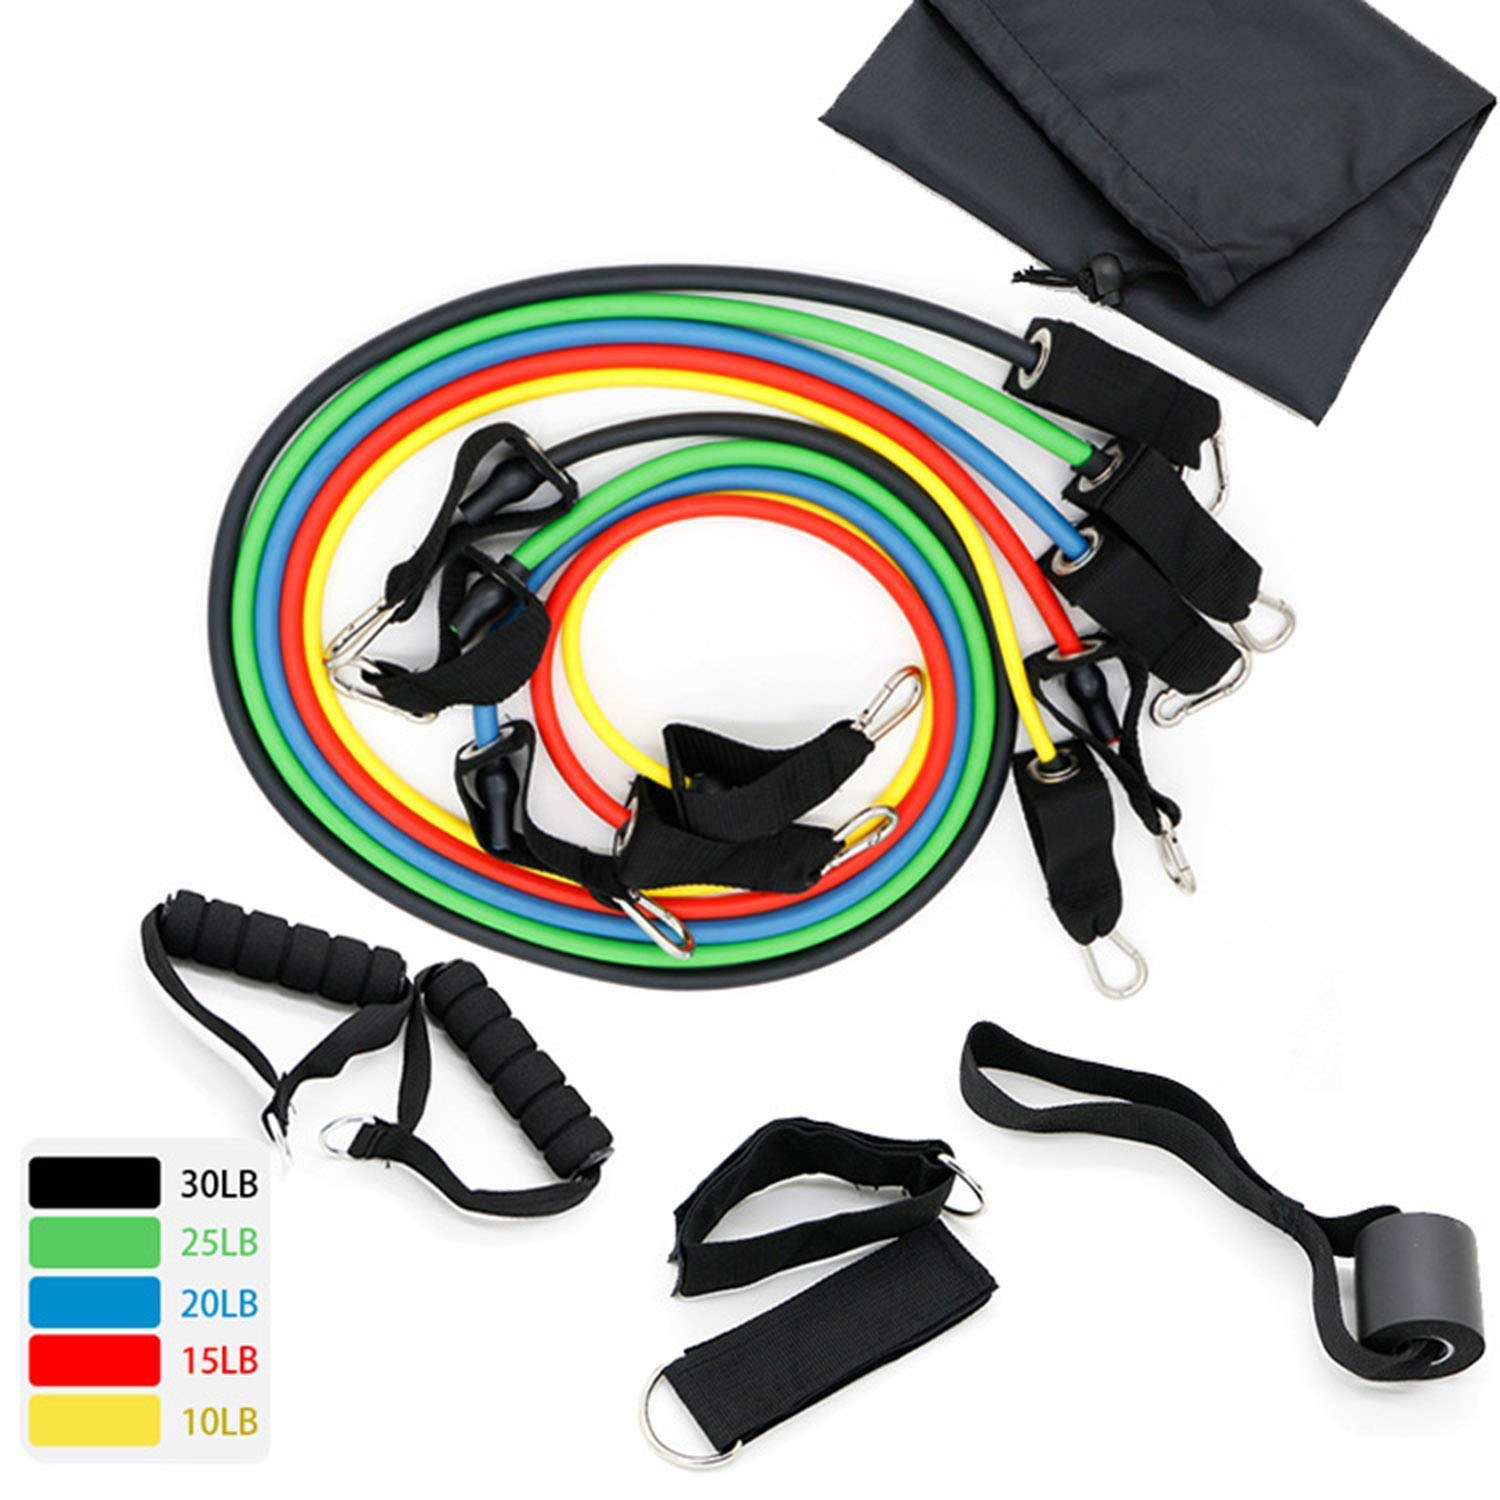 100 LB Traction Rope, 11 Pieces Traction Rope Set, Latex Traction Rope, Fitness Puller